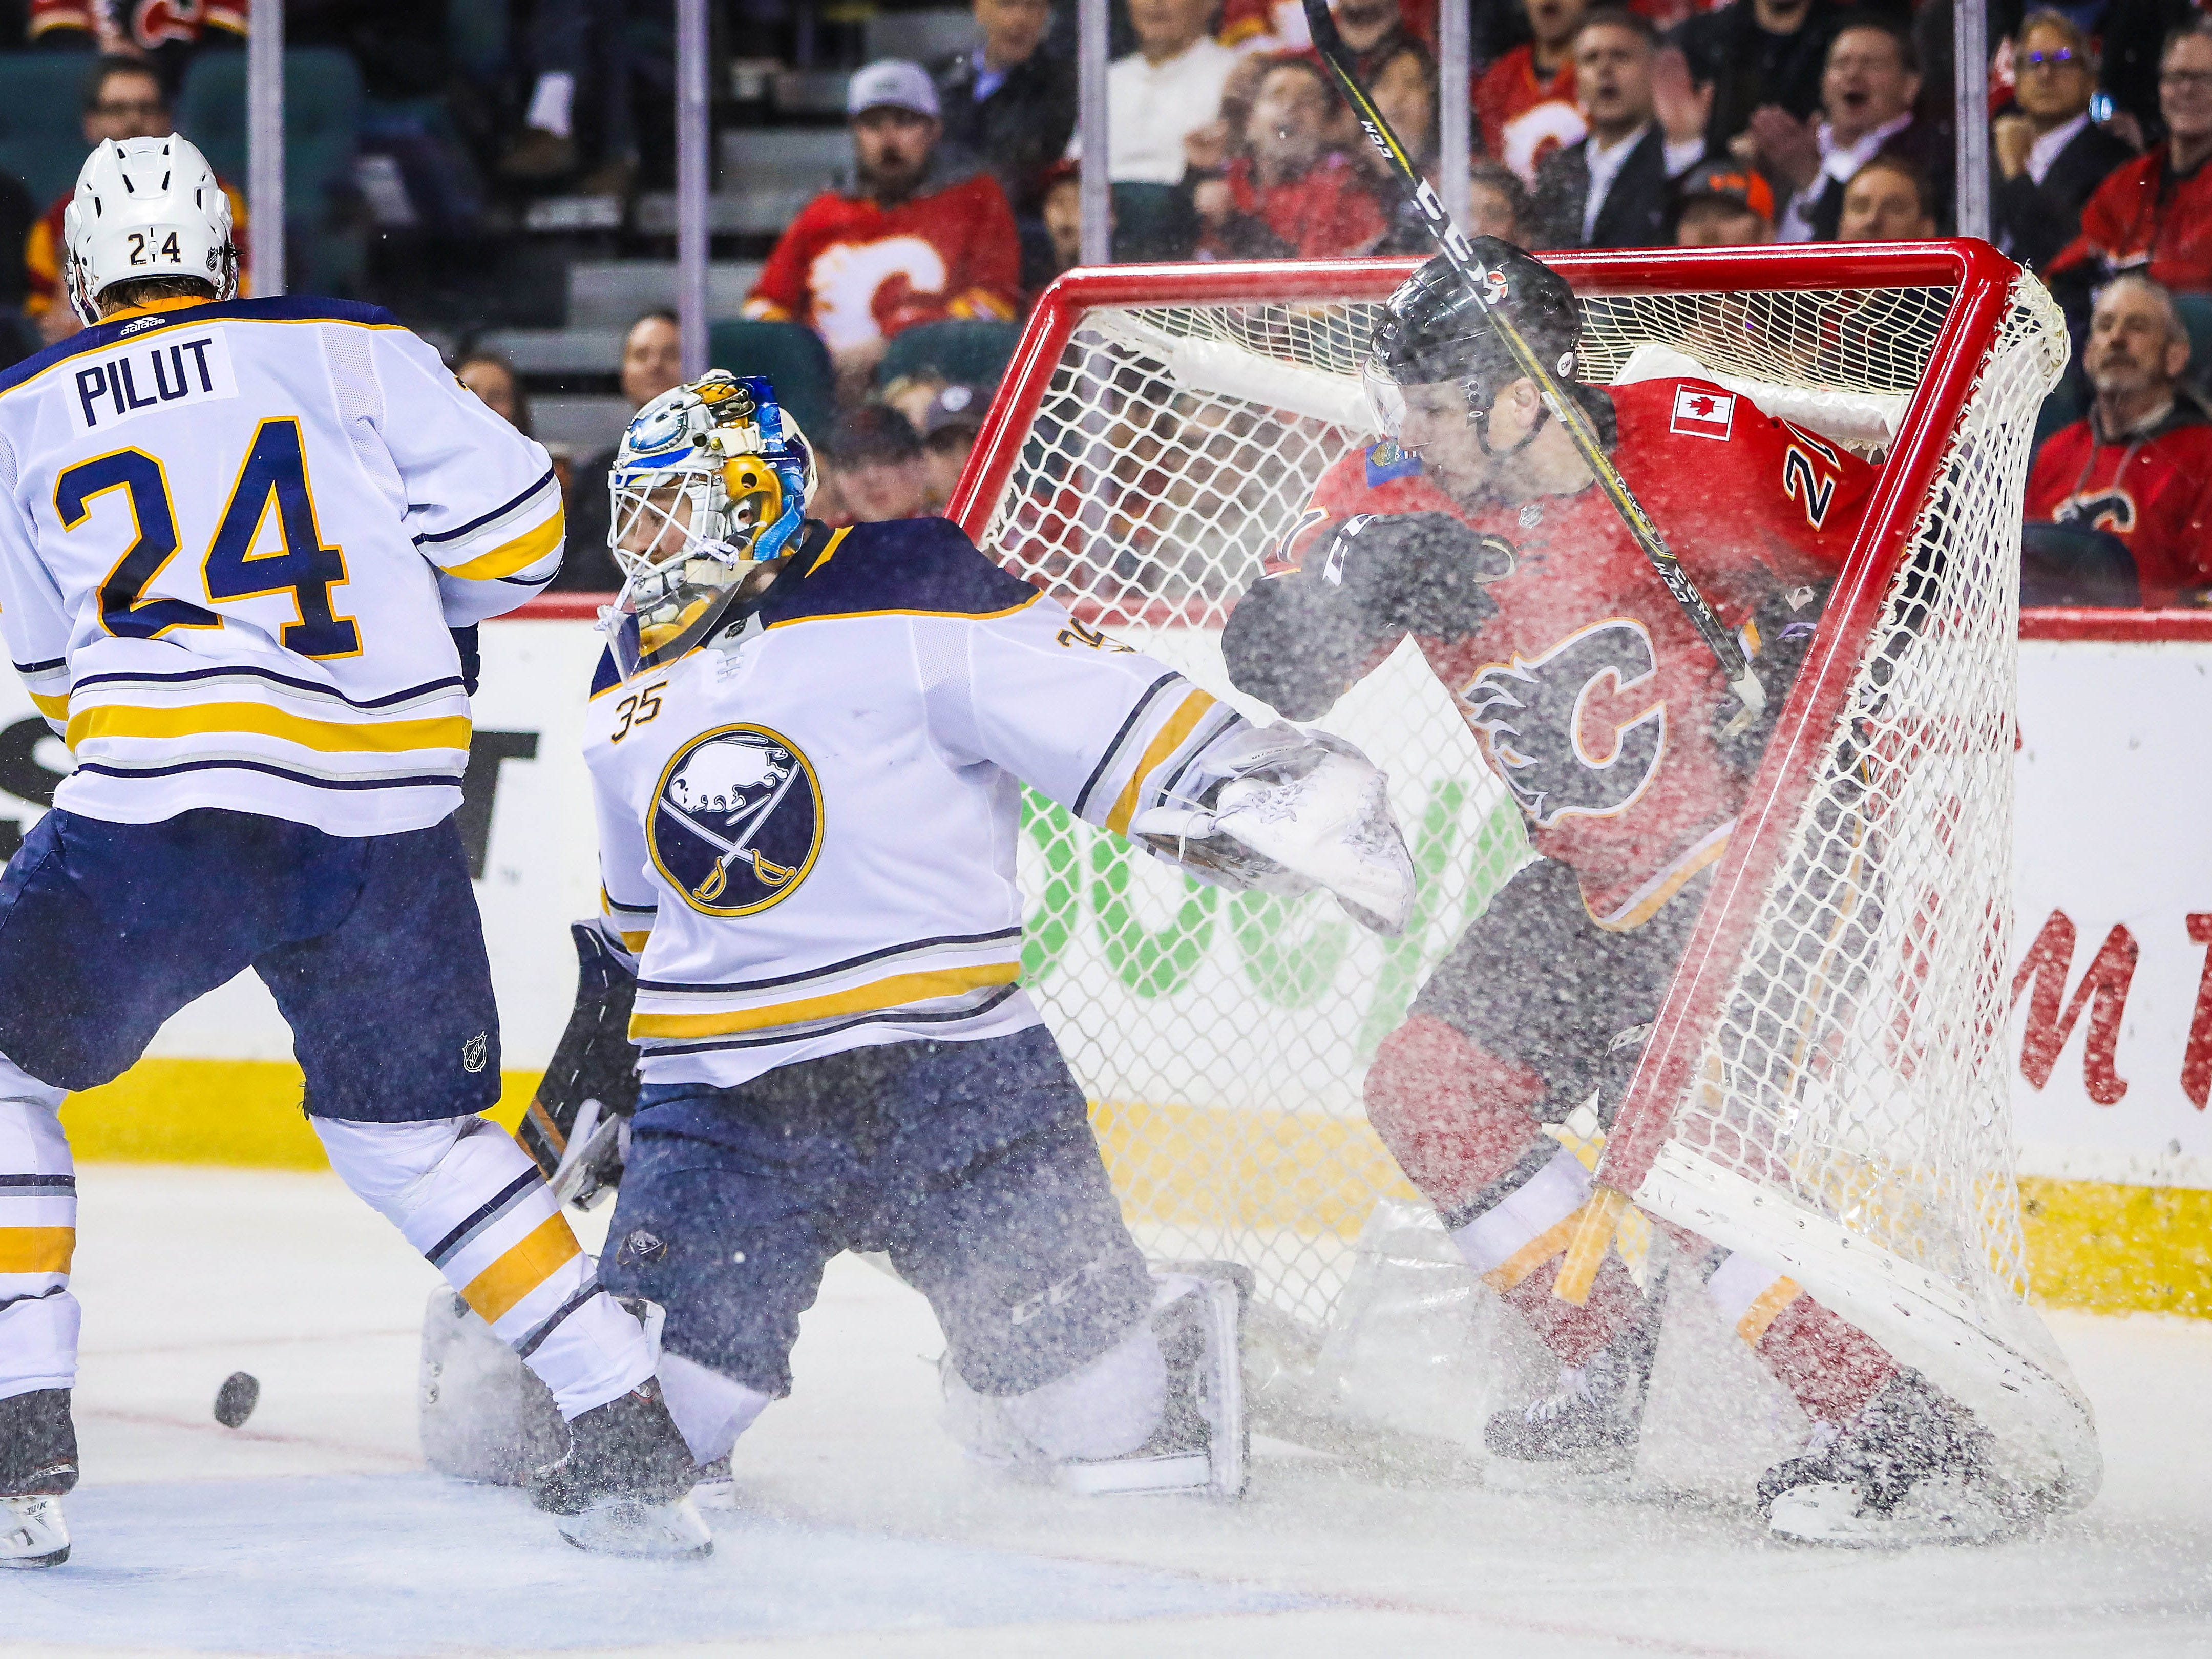 Jan. 16: The Calgary Flames' Garnet Hathaway and Buffalo Sabres goaltender Linus Ullmark collide during the first period at Scotiabank Saddledome.